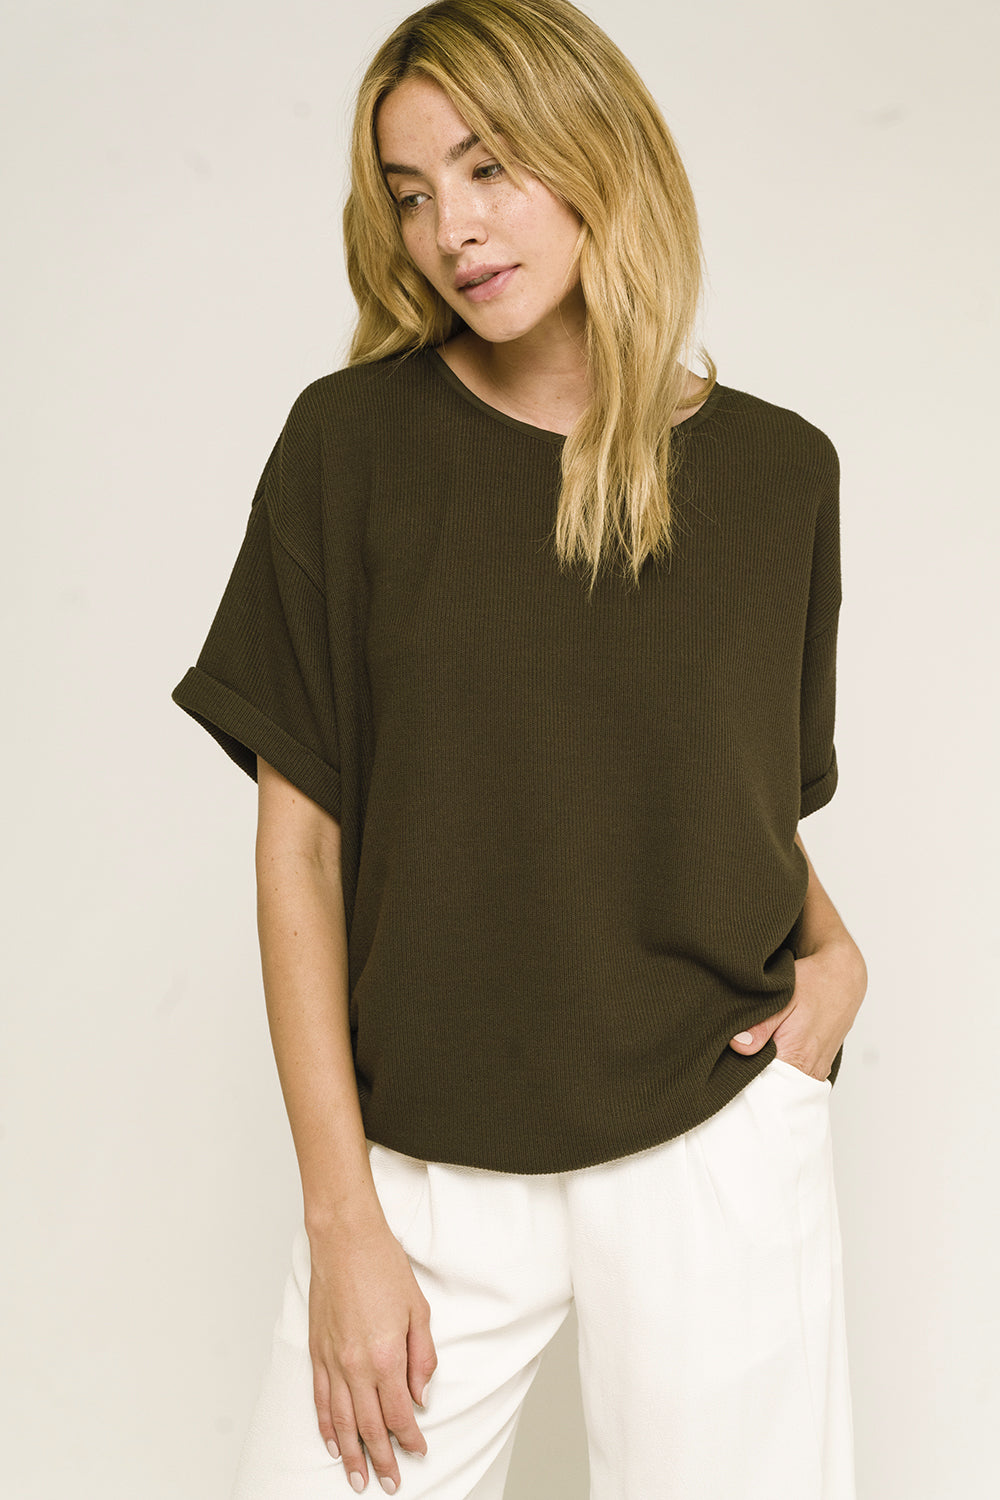 Olive Short Sleeve Knit Top